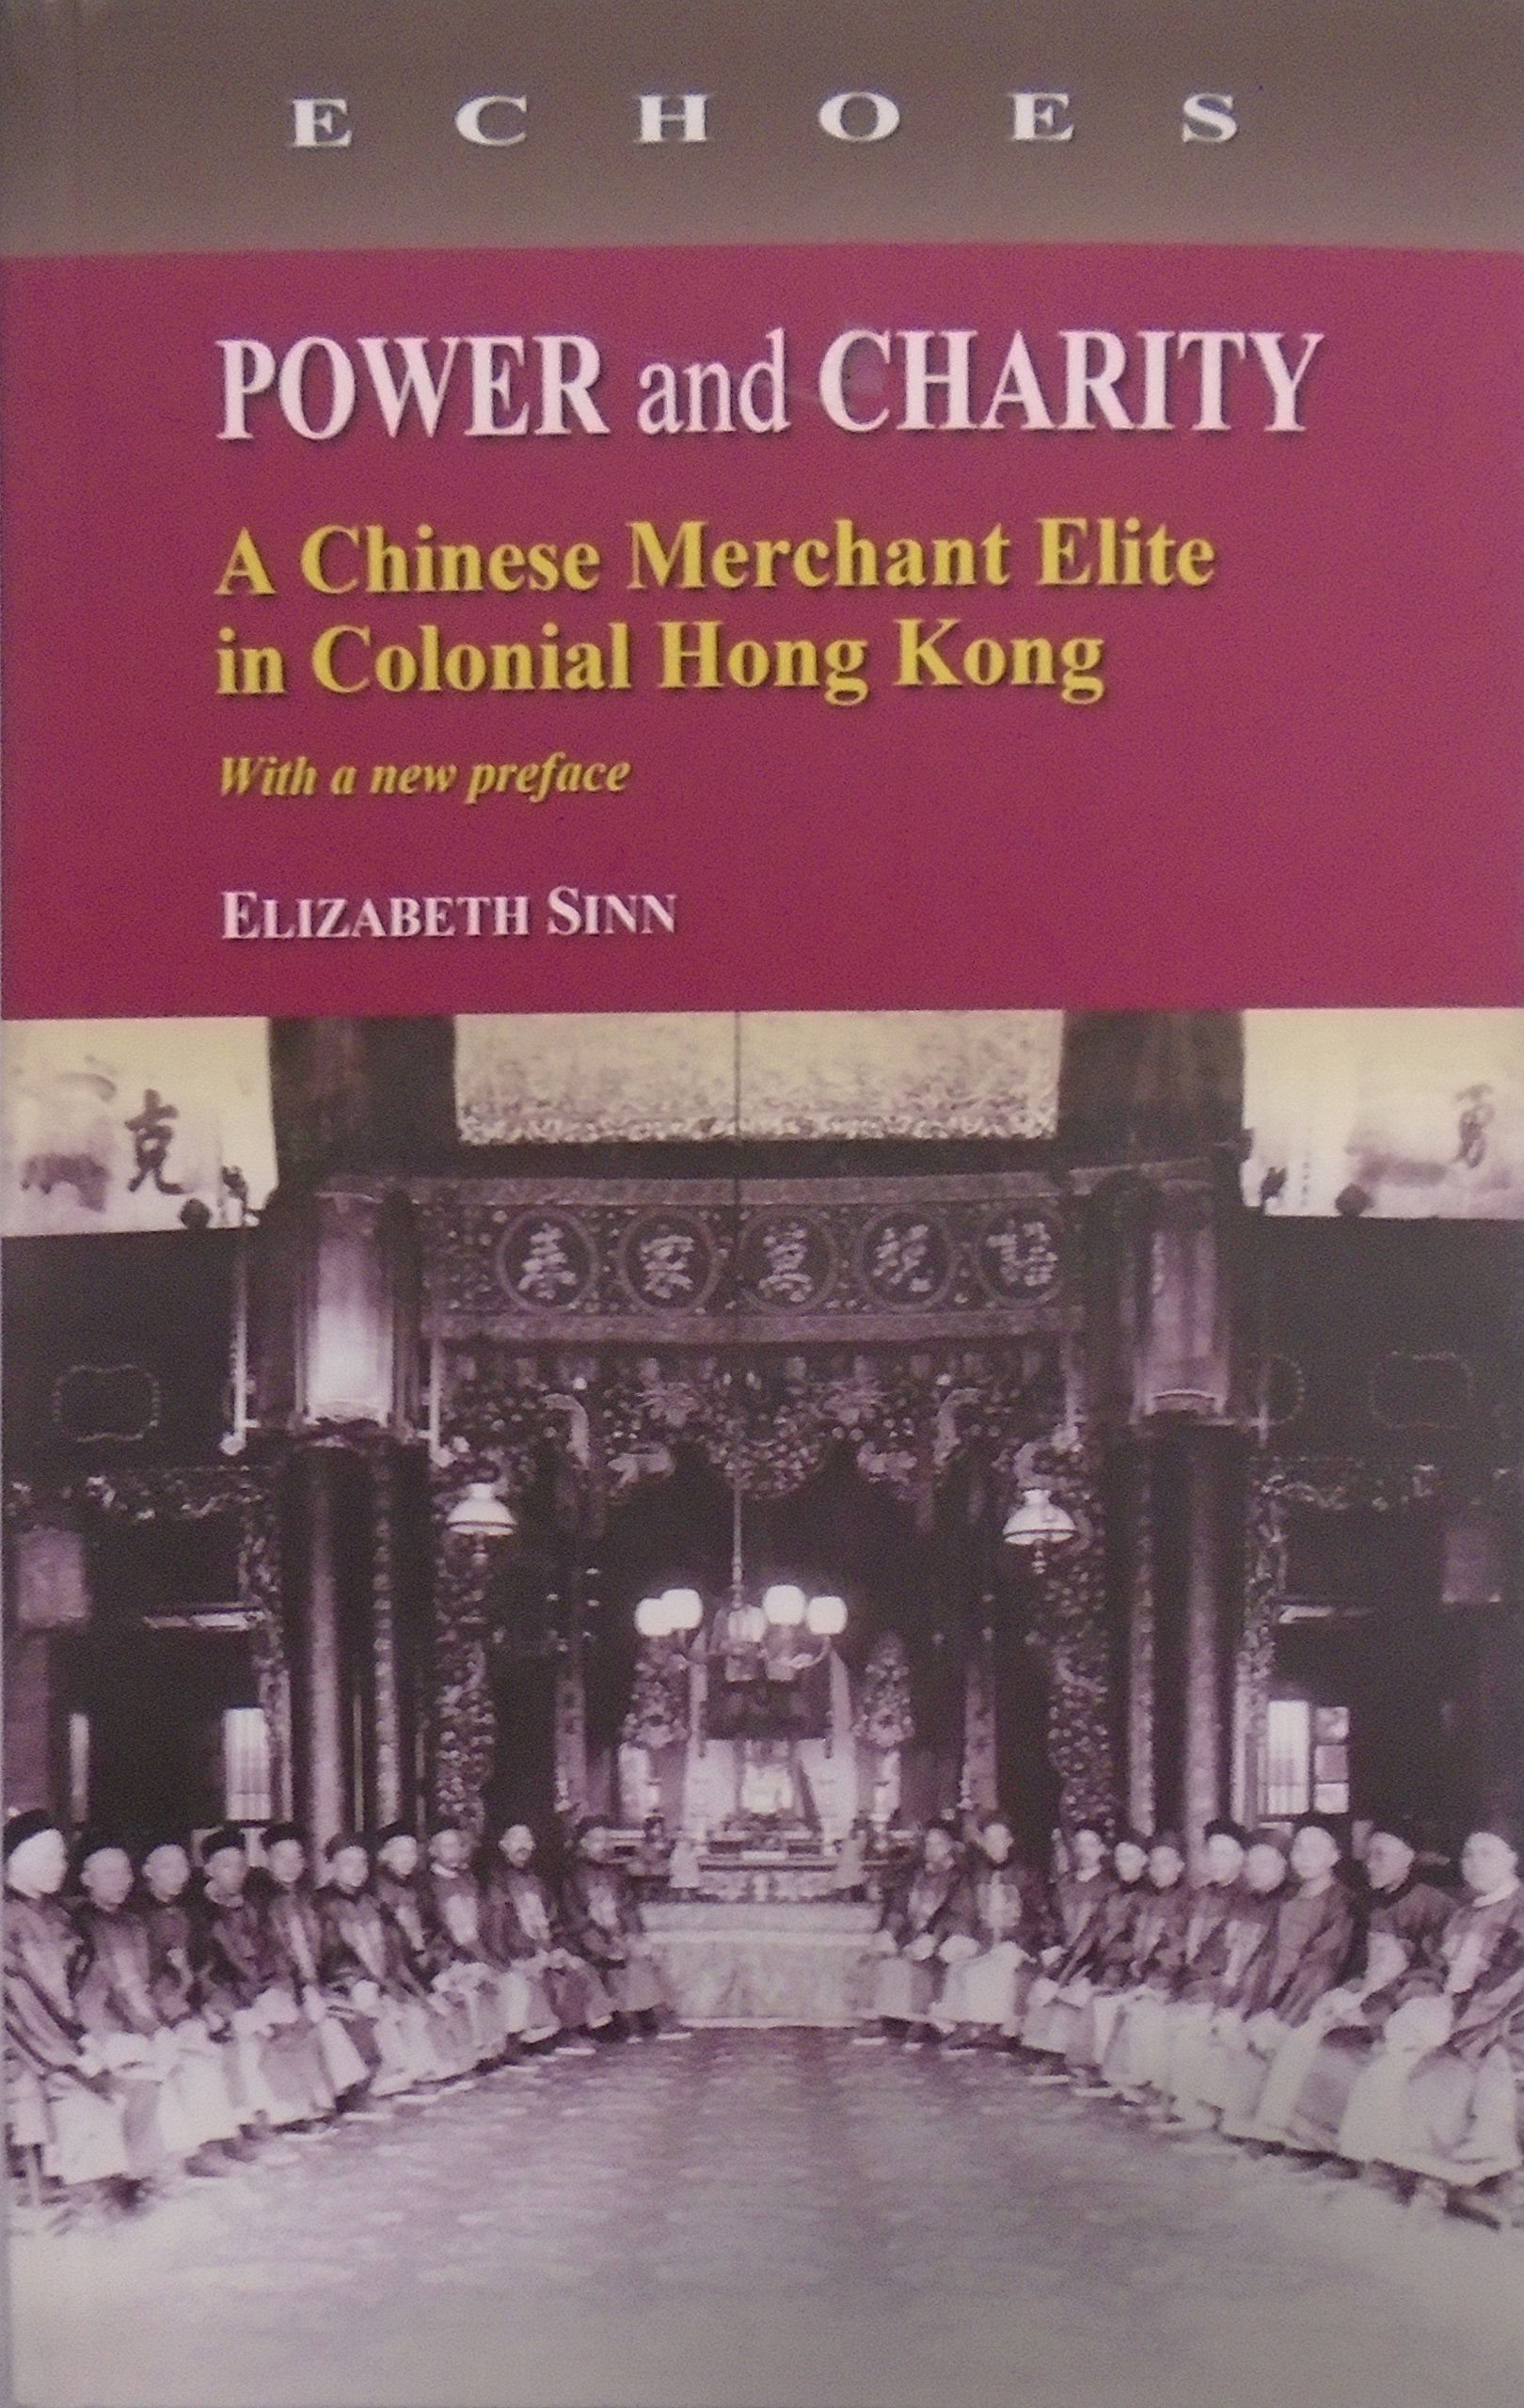 หนังสือ Power and charity: A Chinese merchant elite in Colonial Hong Kong